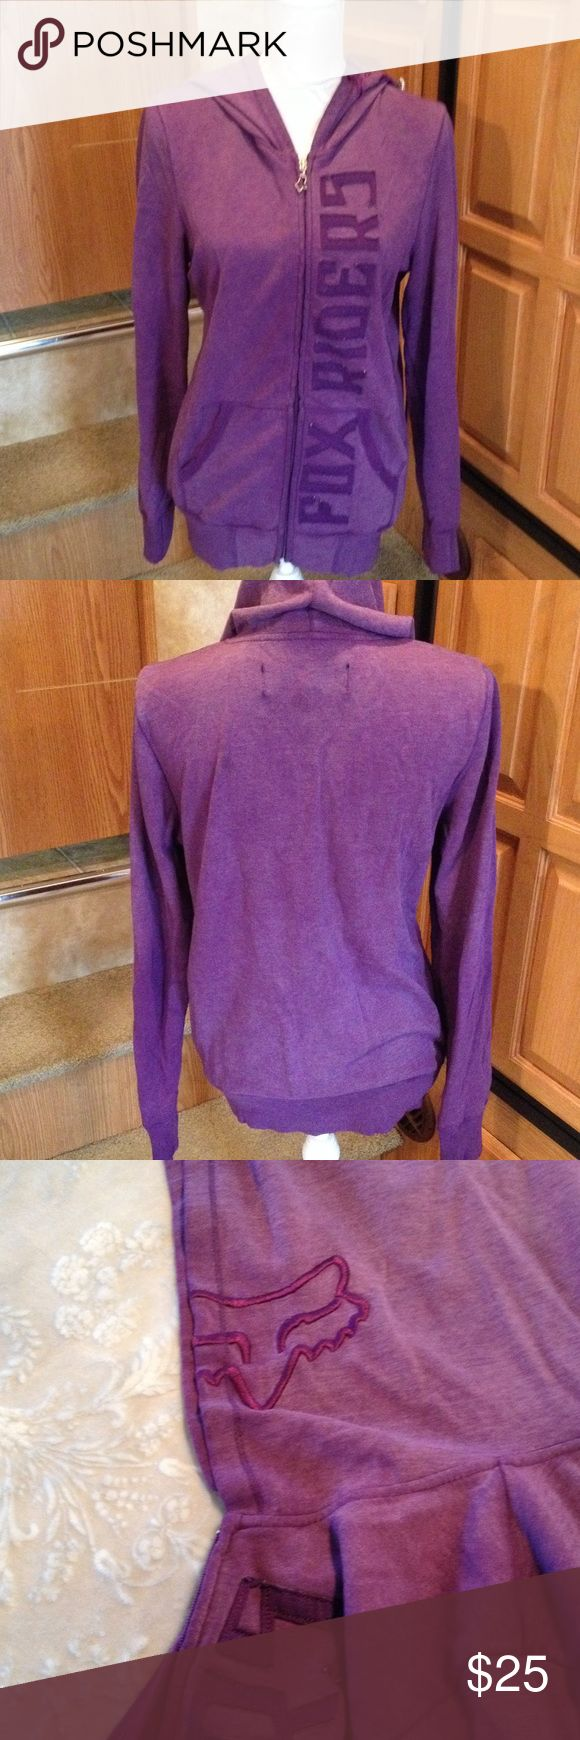 Fox Racing Purple Zip Up Hoodie L Pre-loved shows normal signs of wear. Please note there is a tiny hold in right sleeve on cuff (pic 4). I do NOT trade. Fox Jackets & Coats